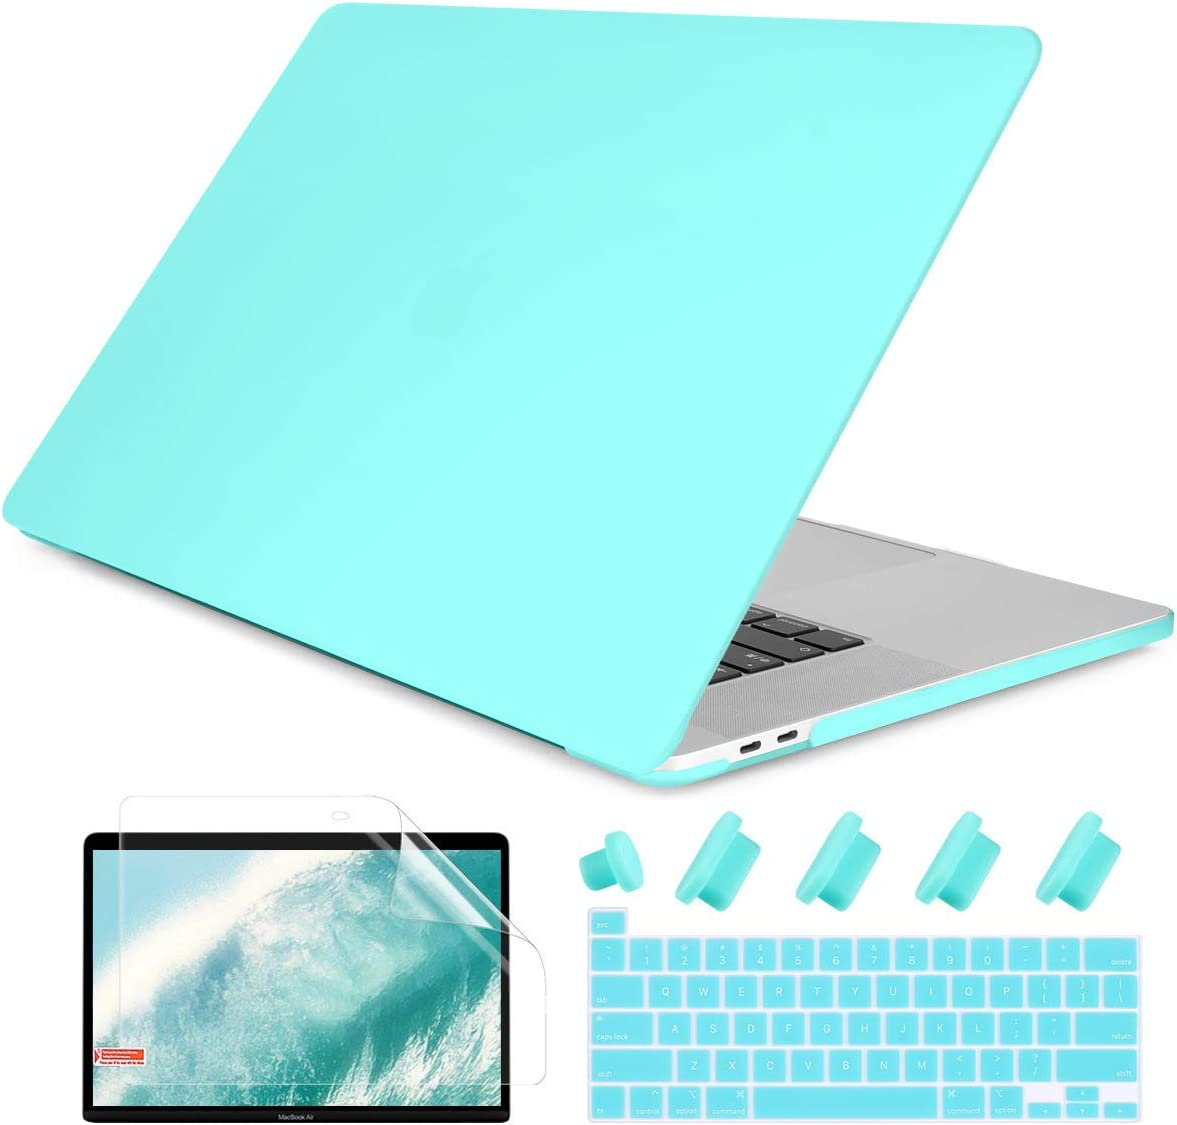 Dongke MacBook Pro 13 2020 Case Model A2251/A2289, Plastic Smooth Frosted Hard Shell Cover Case for MacBook Pro 13 inch with Retina Display and Touch Bar Fits Touch ID, Tiffany Blue